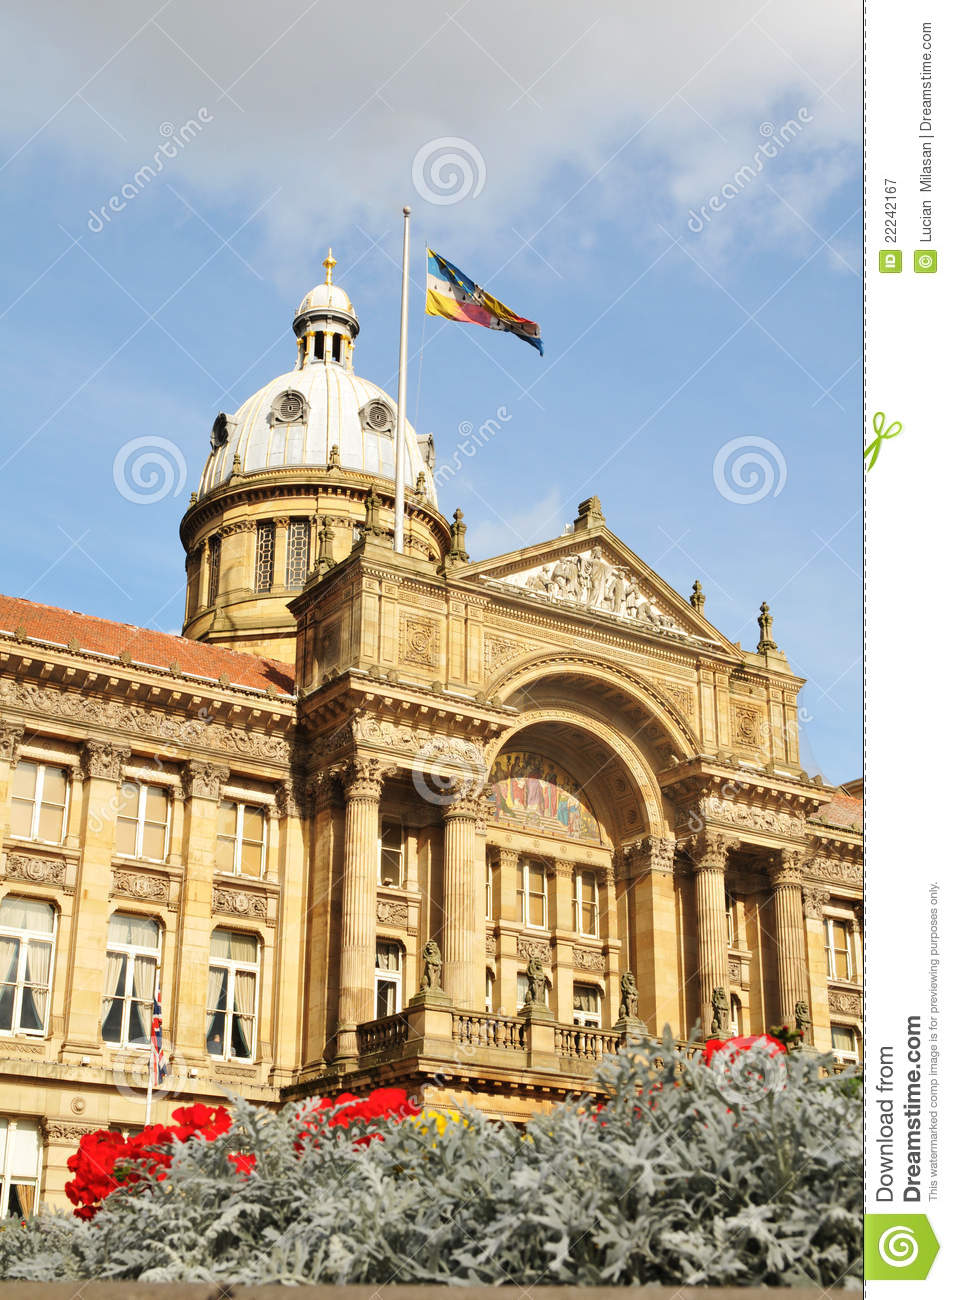 Birmingham architecture stock image. Image of government - 22242167